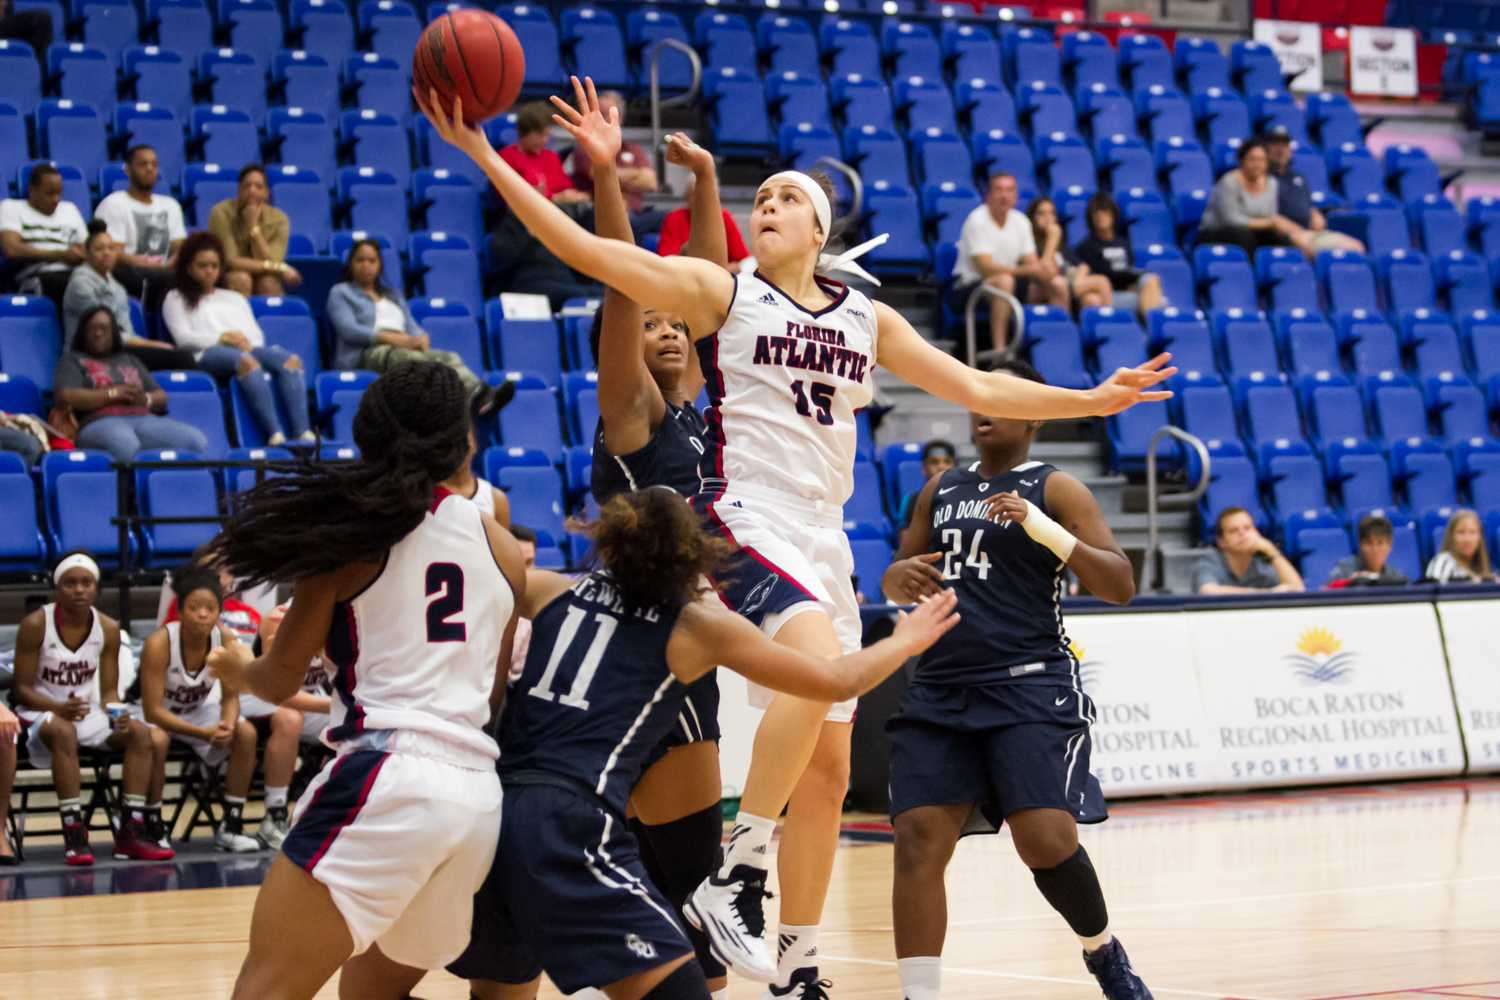 Cedeno attempts a shot in traffic. She was 1-of-9 in the Owls' loss to ODU on Jan. 31.